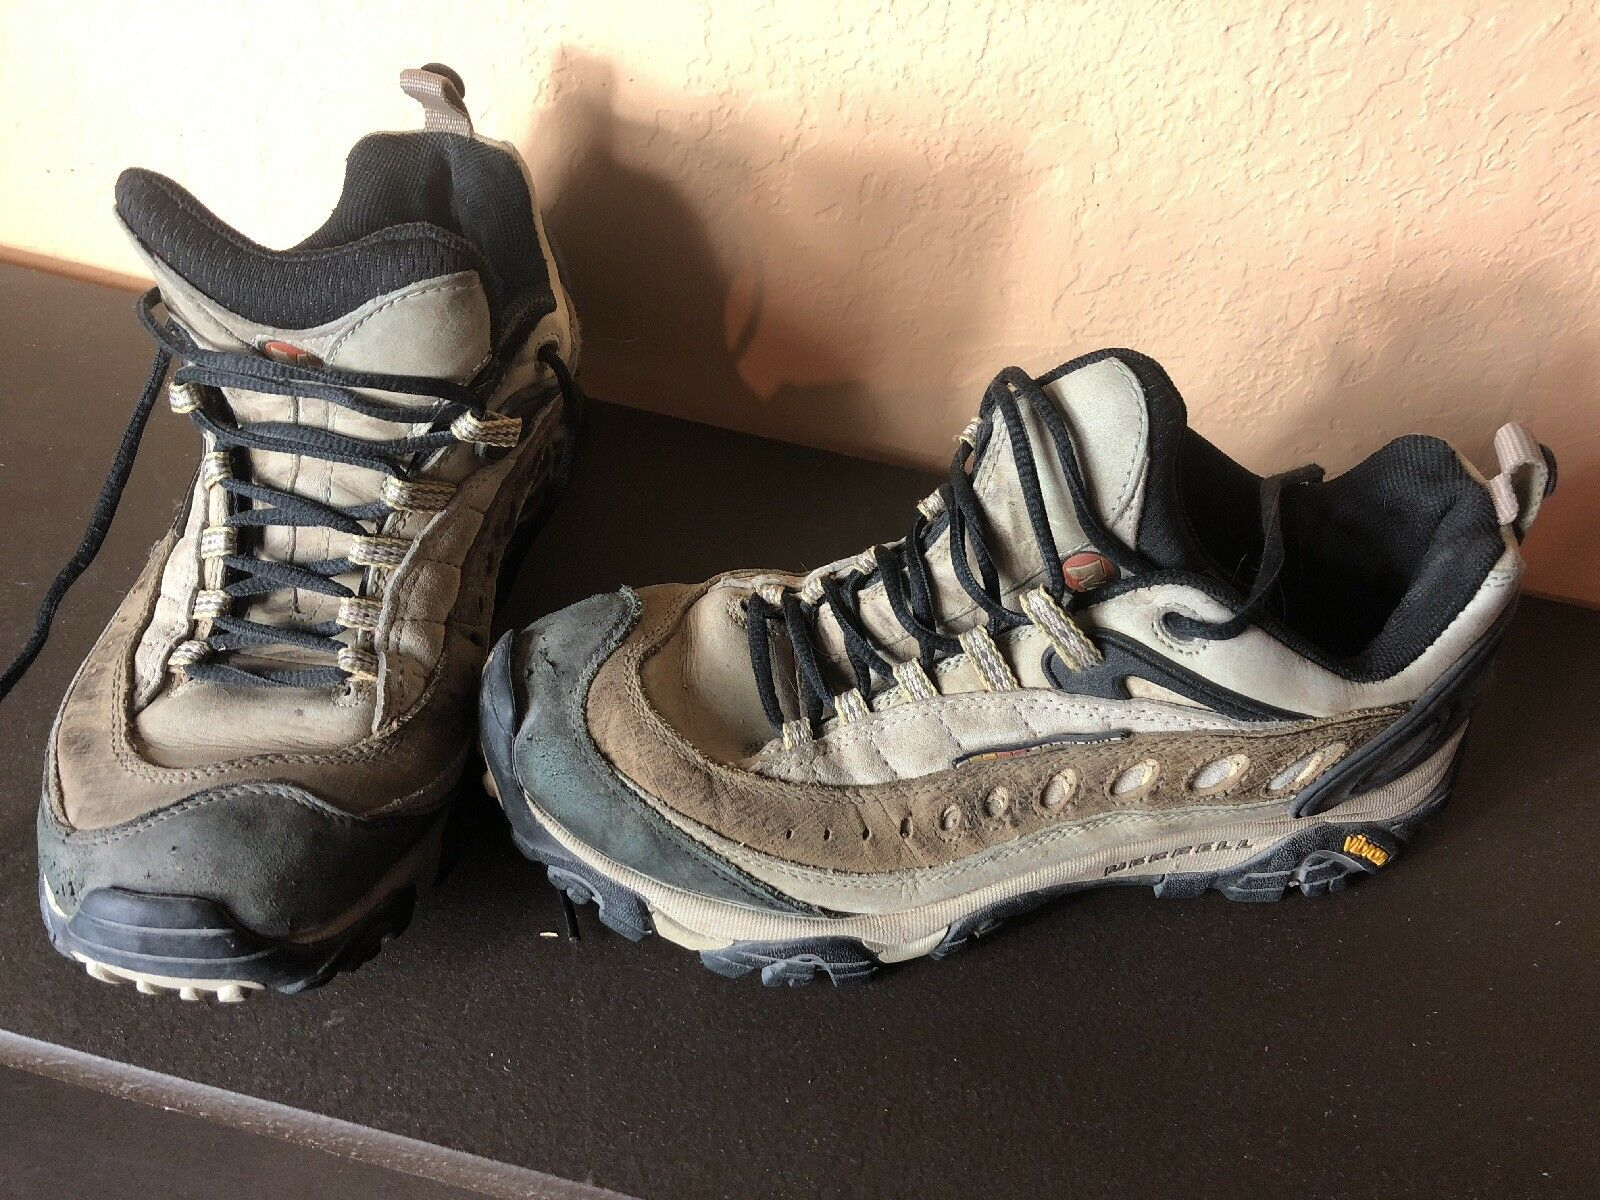 Merrell Continuum Pulse II Wintergreen Women's Hiking Shoes Size 10